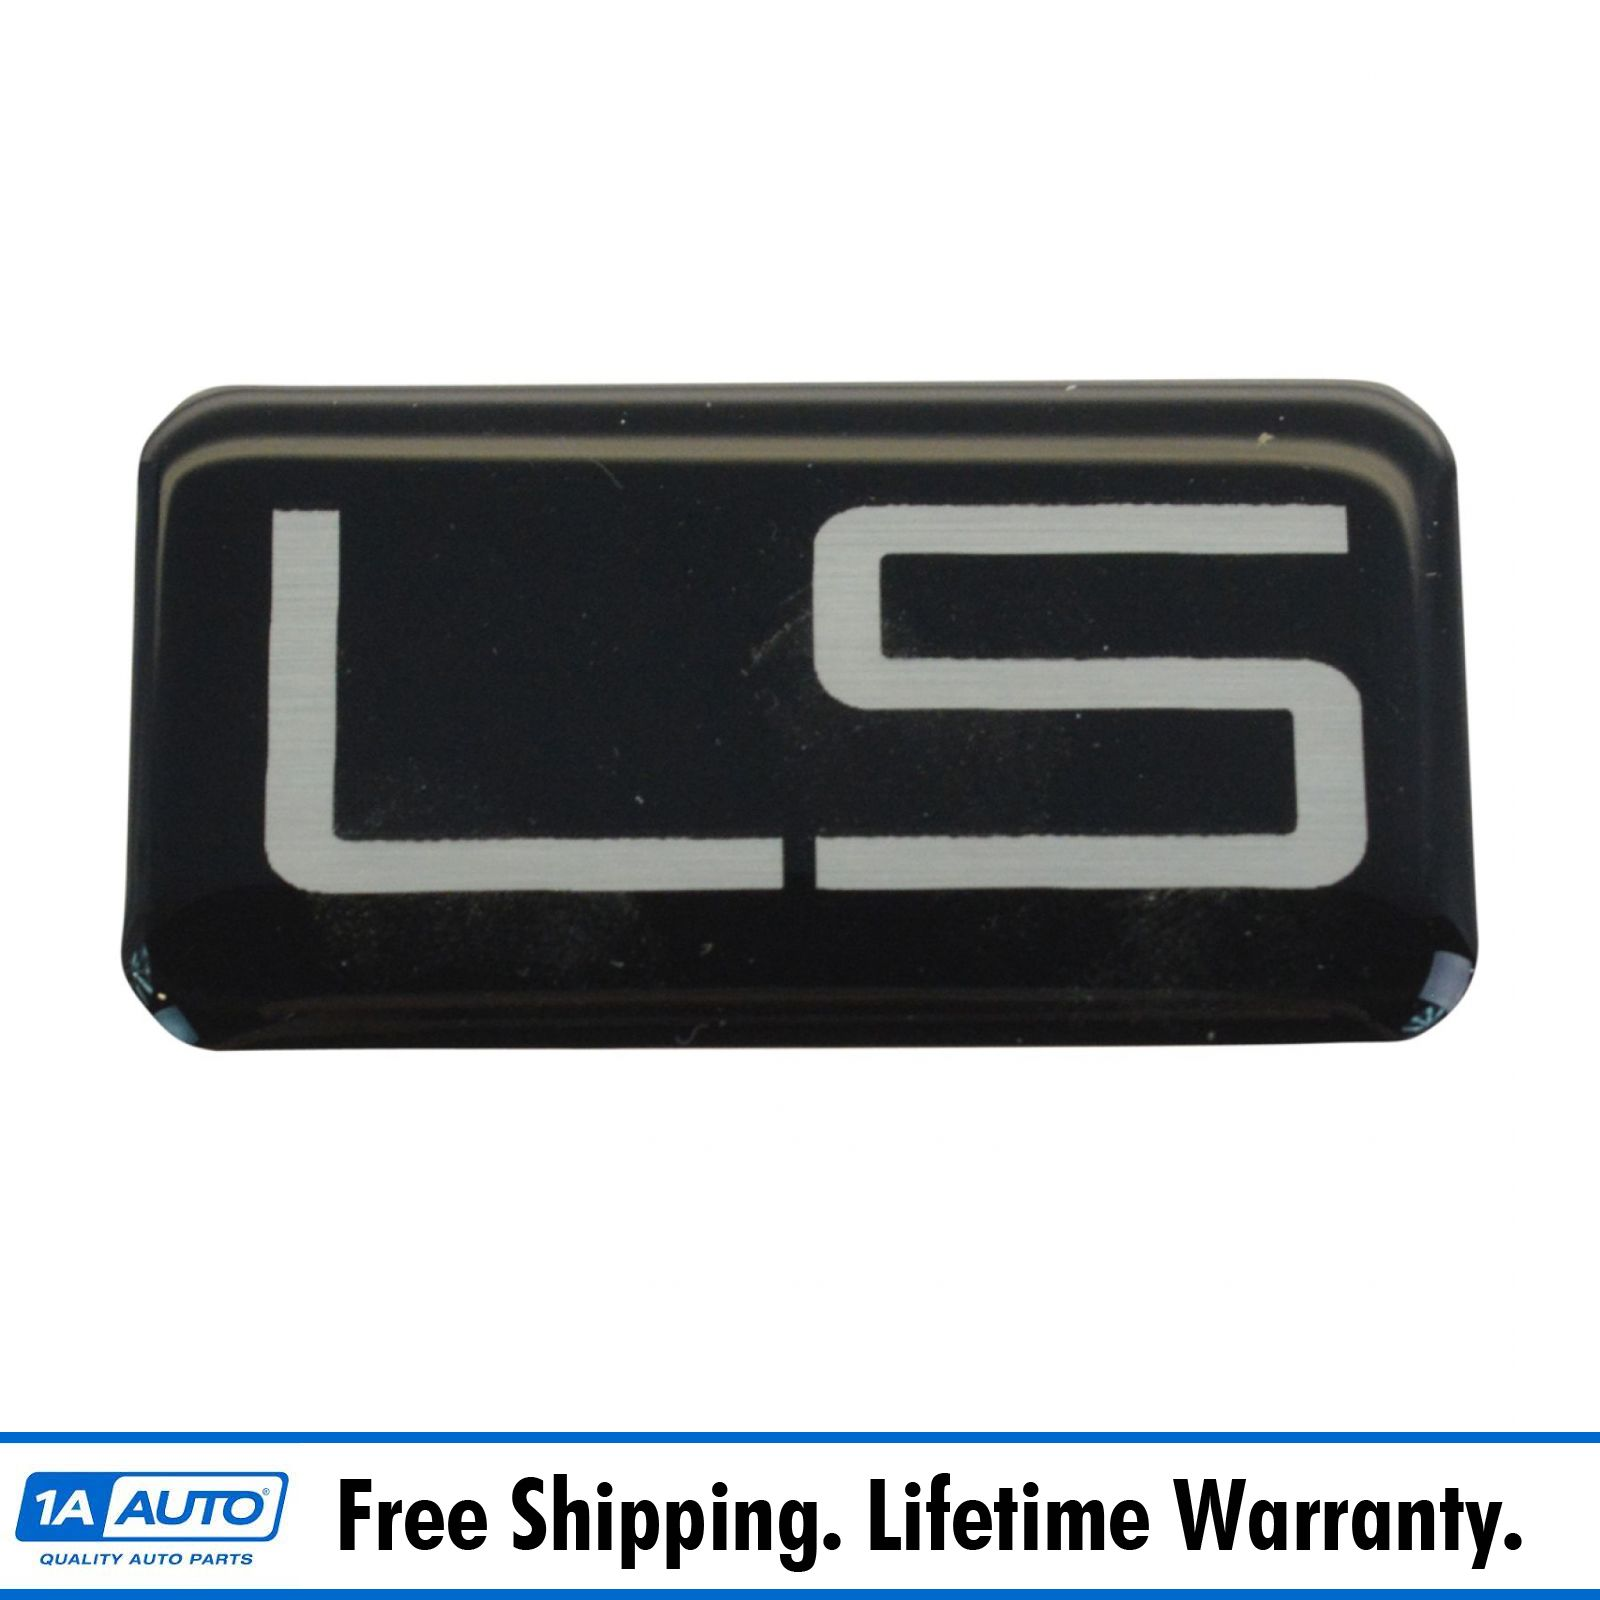 OEM 15678961 LS Nameplate Emblem Black /& Silver for Chevy Pickup Truck SUV New